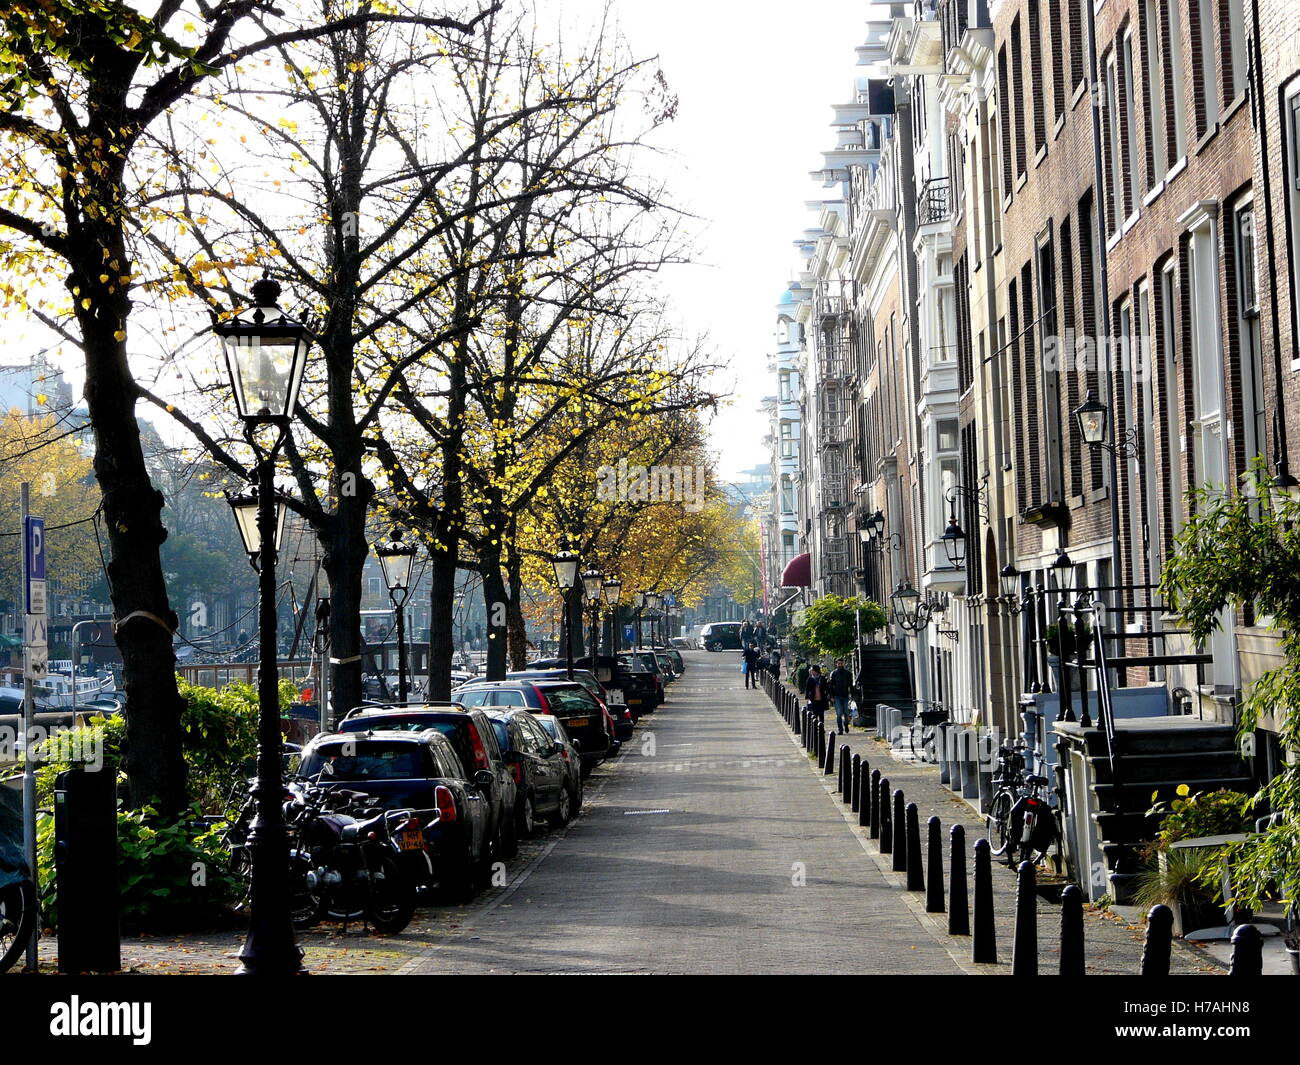 City street near canal, Amsterdam. City urban life, quiet alley, afternoon light. Row of houses and cars and trees. - Stock Image